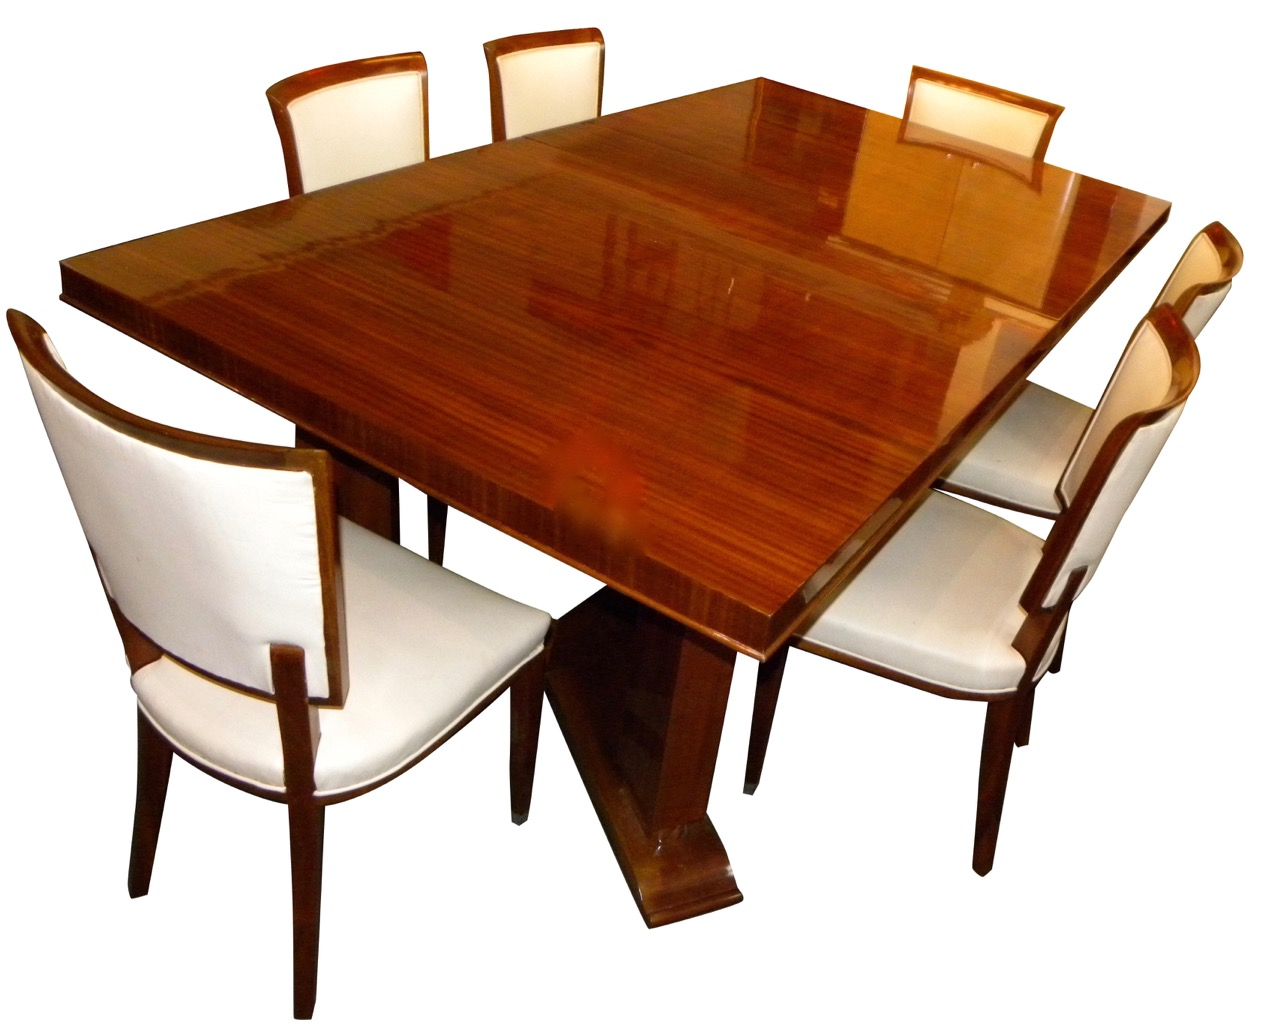 Jules Leleu Dining Room Table Chairs 1937 Paris Exhibition